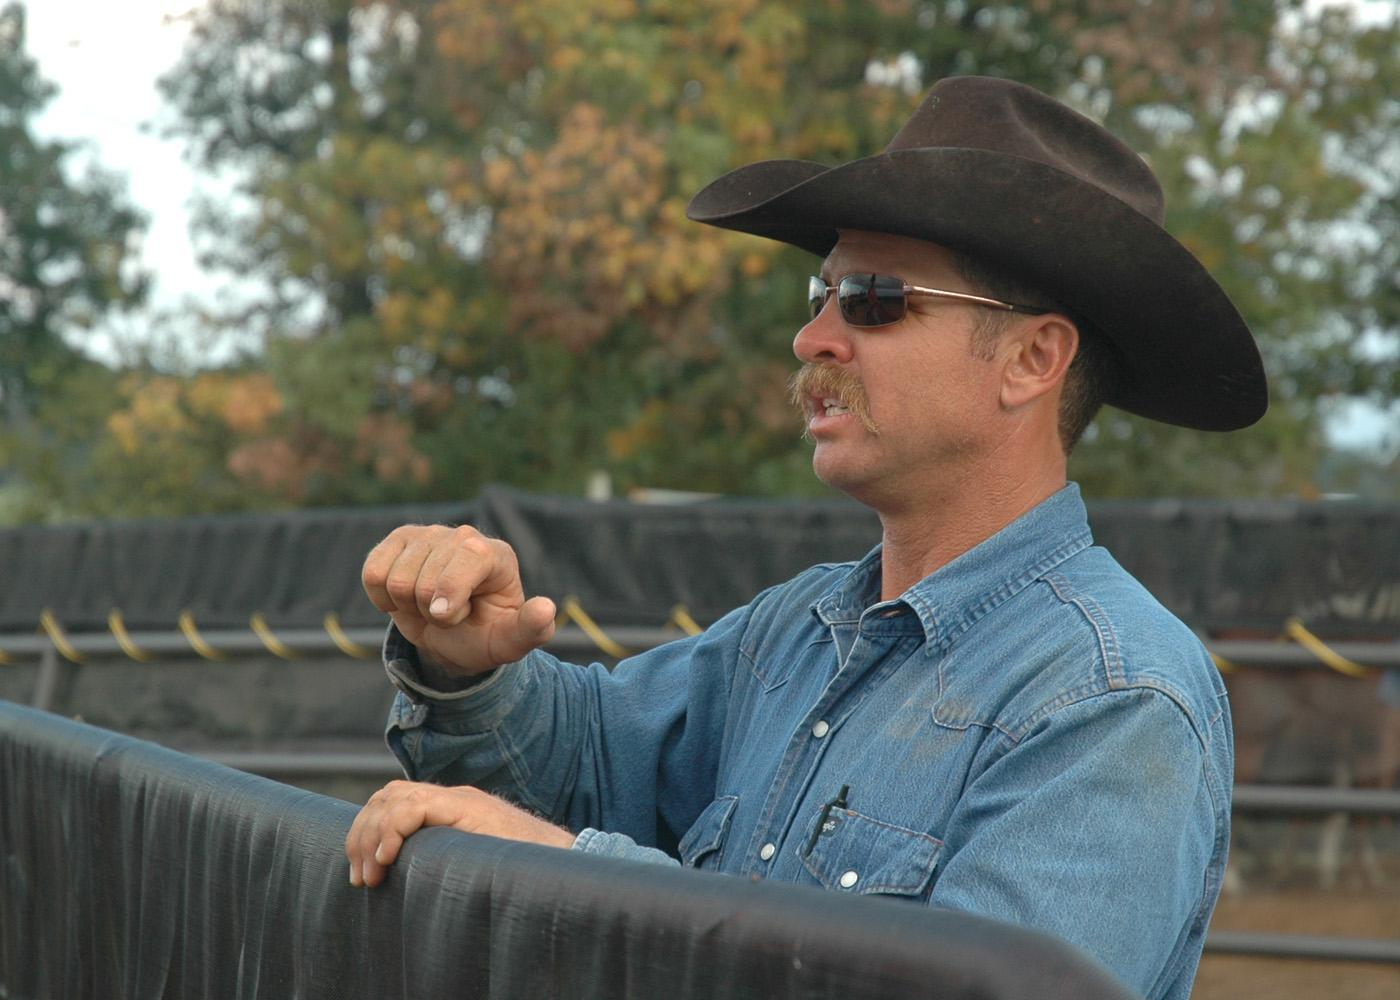 Horse trainer Michael Freely instructs Mississippi State University students in an equine behavior class. (Photo by Linda Breazeale)